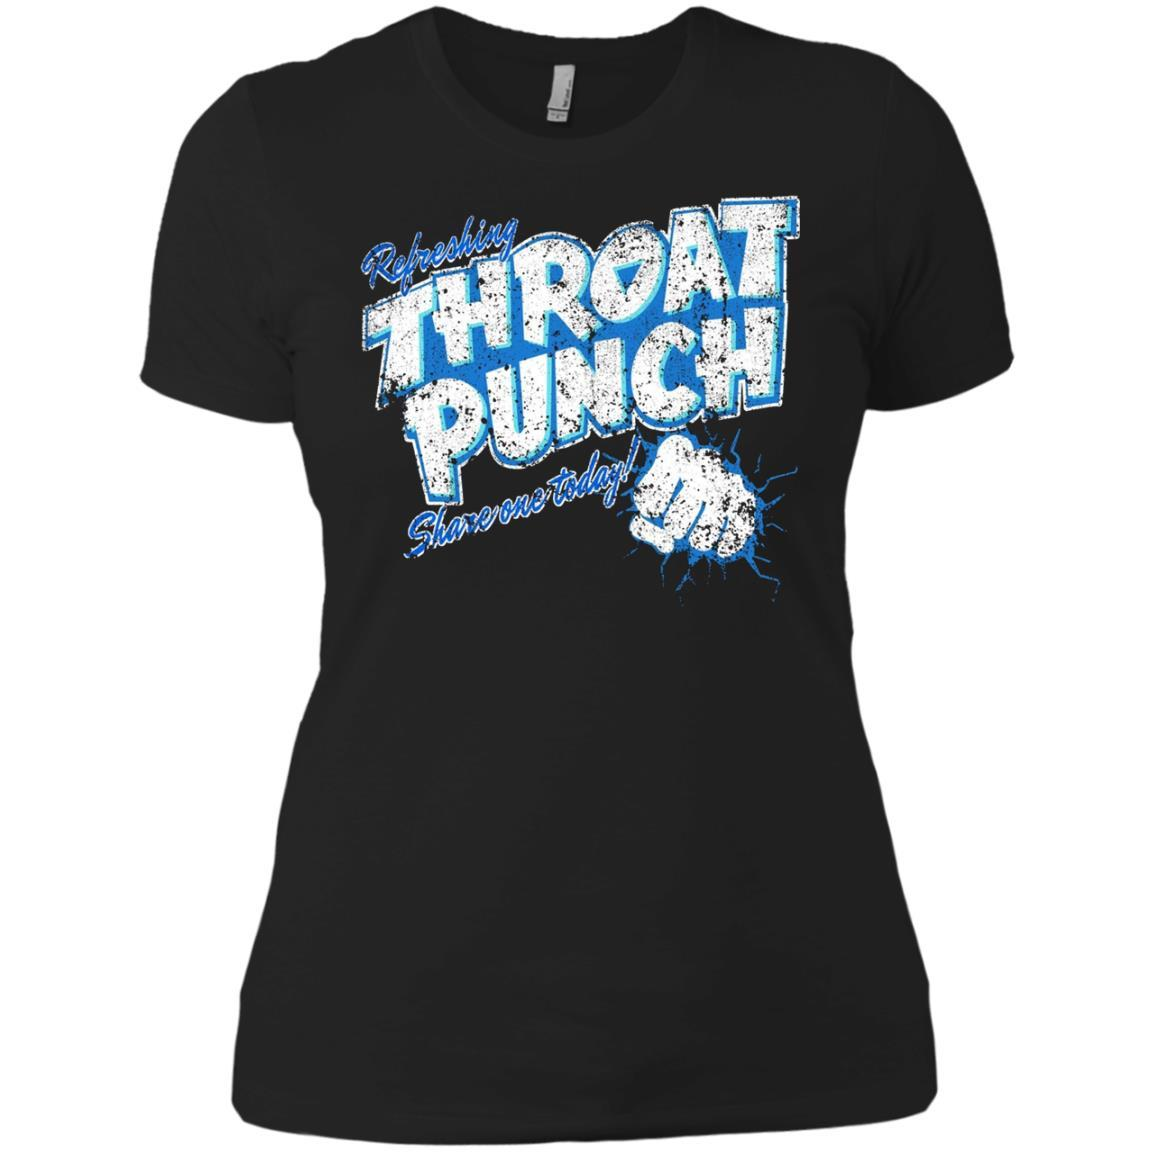 Refreshing Throat Punch Grunge - Ladies' Boyfriend T-Shirt Style / Color / Size